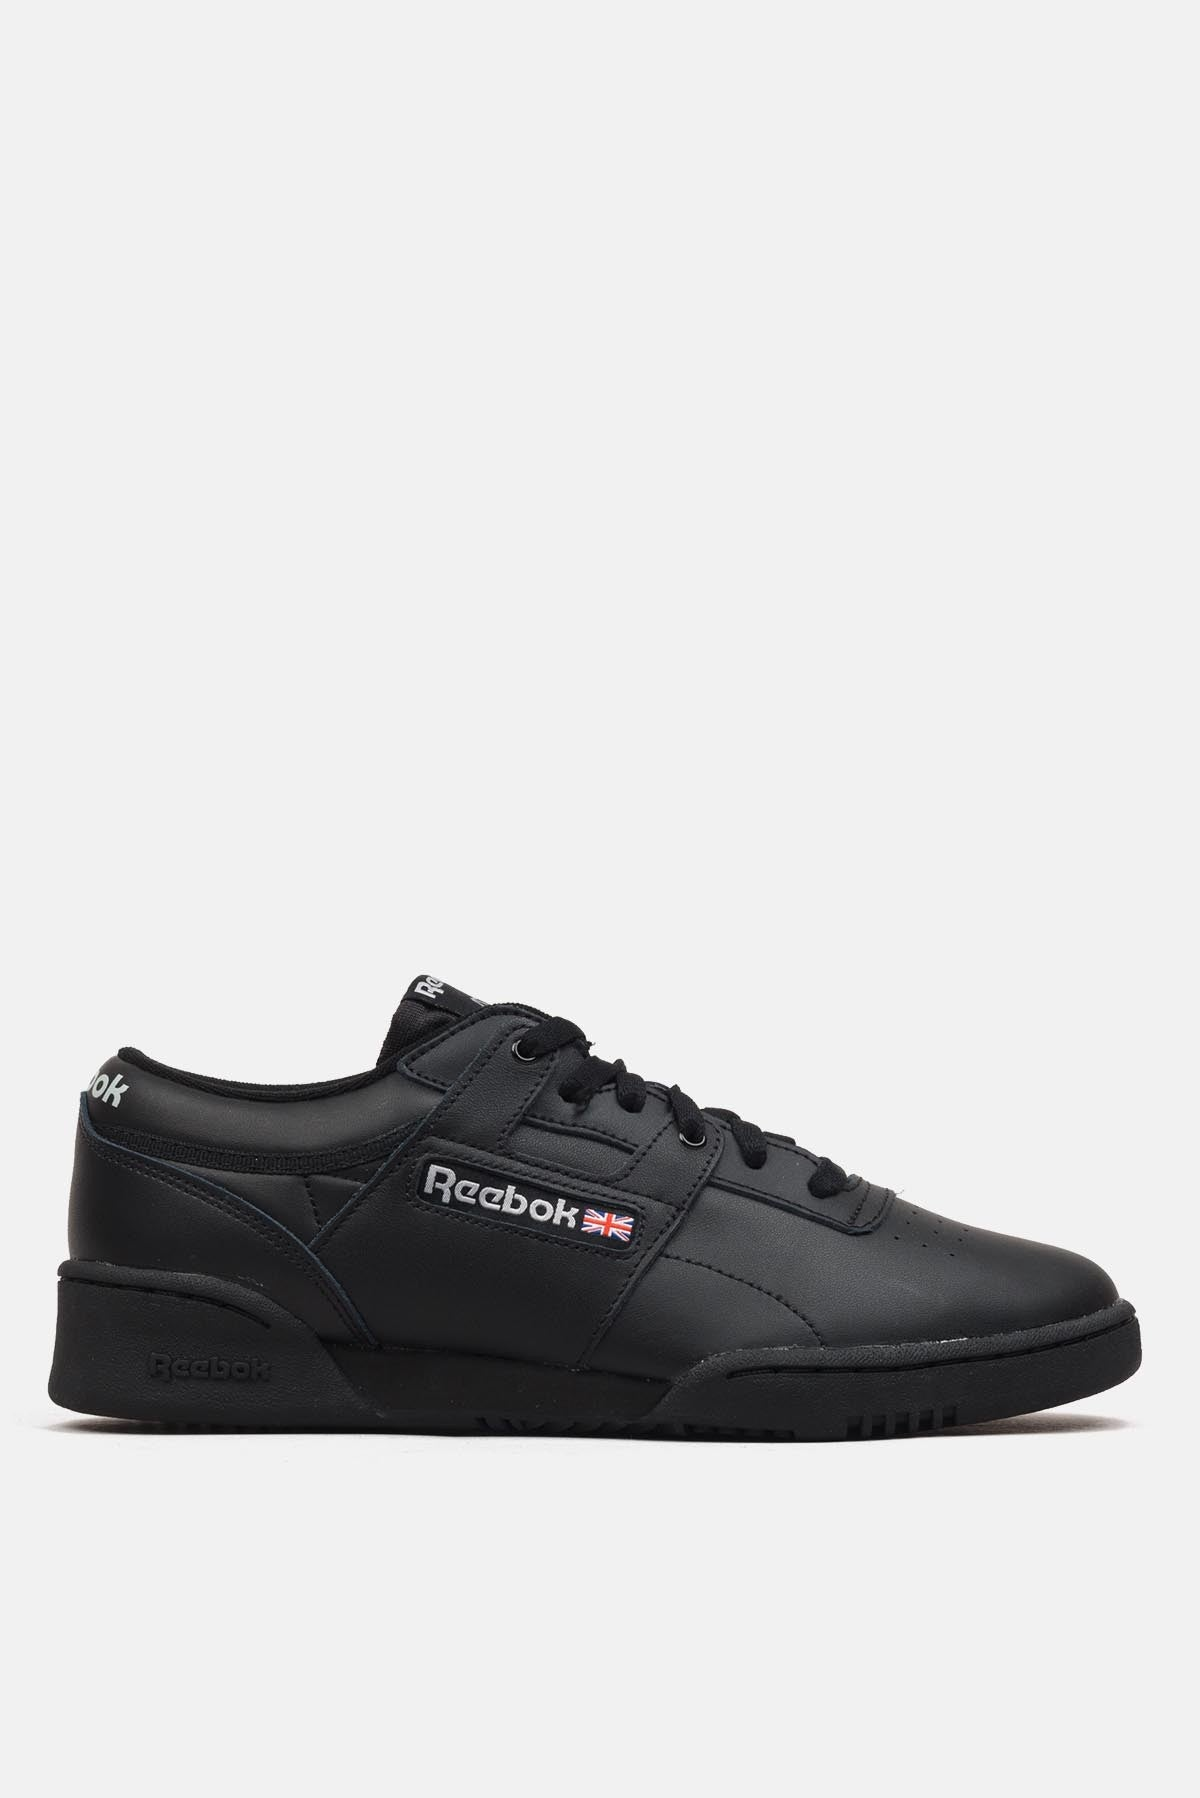 64e50382d00f2 Reebok Classics Workout Low Shoes available from Priory